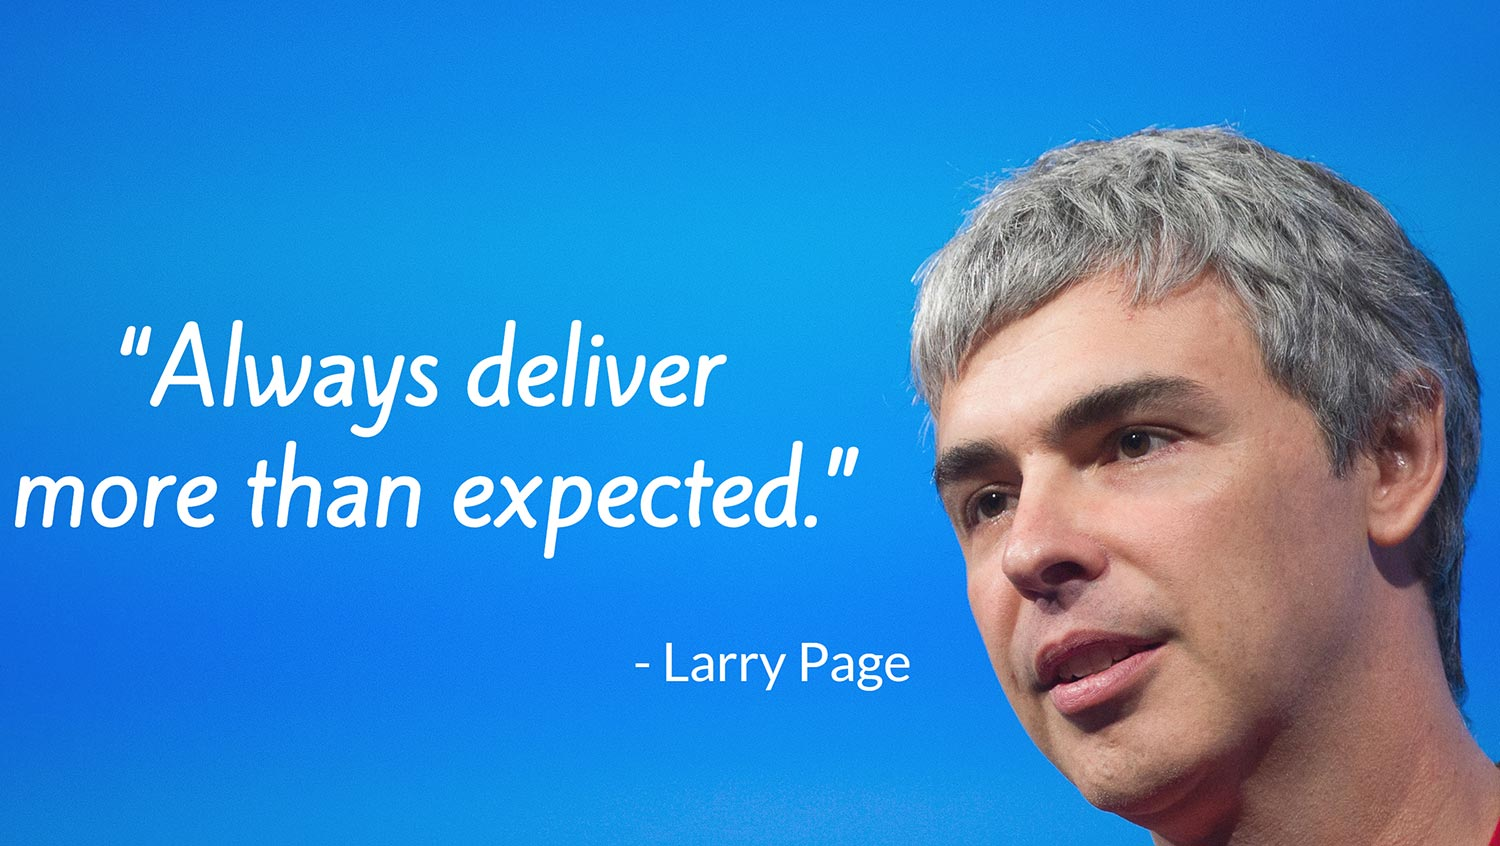 Always deliver more than expected. - Larry Page.